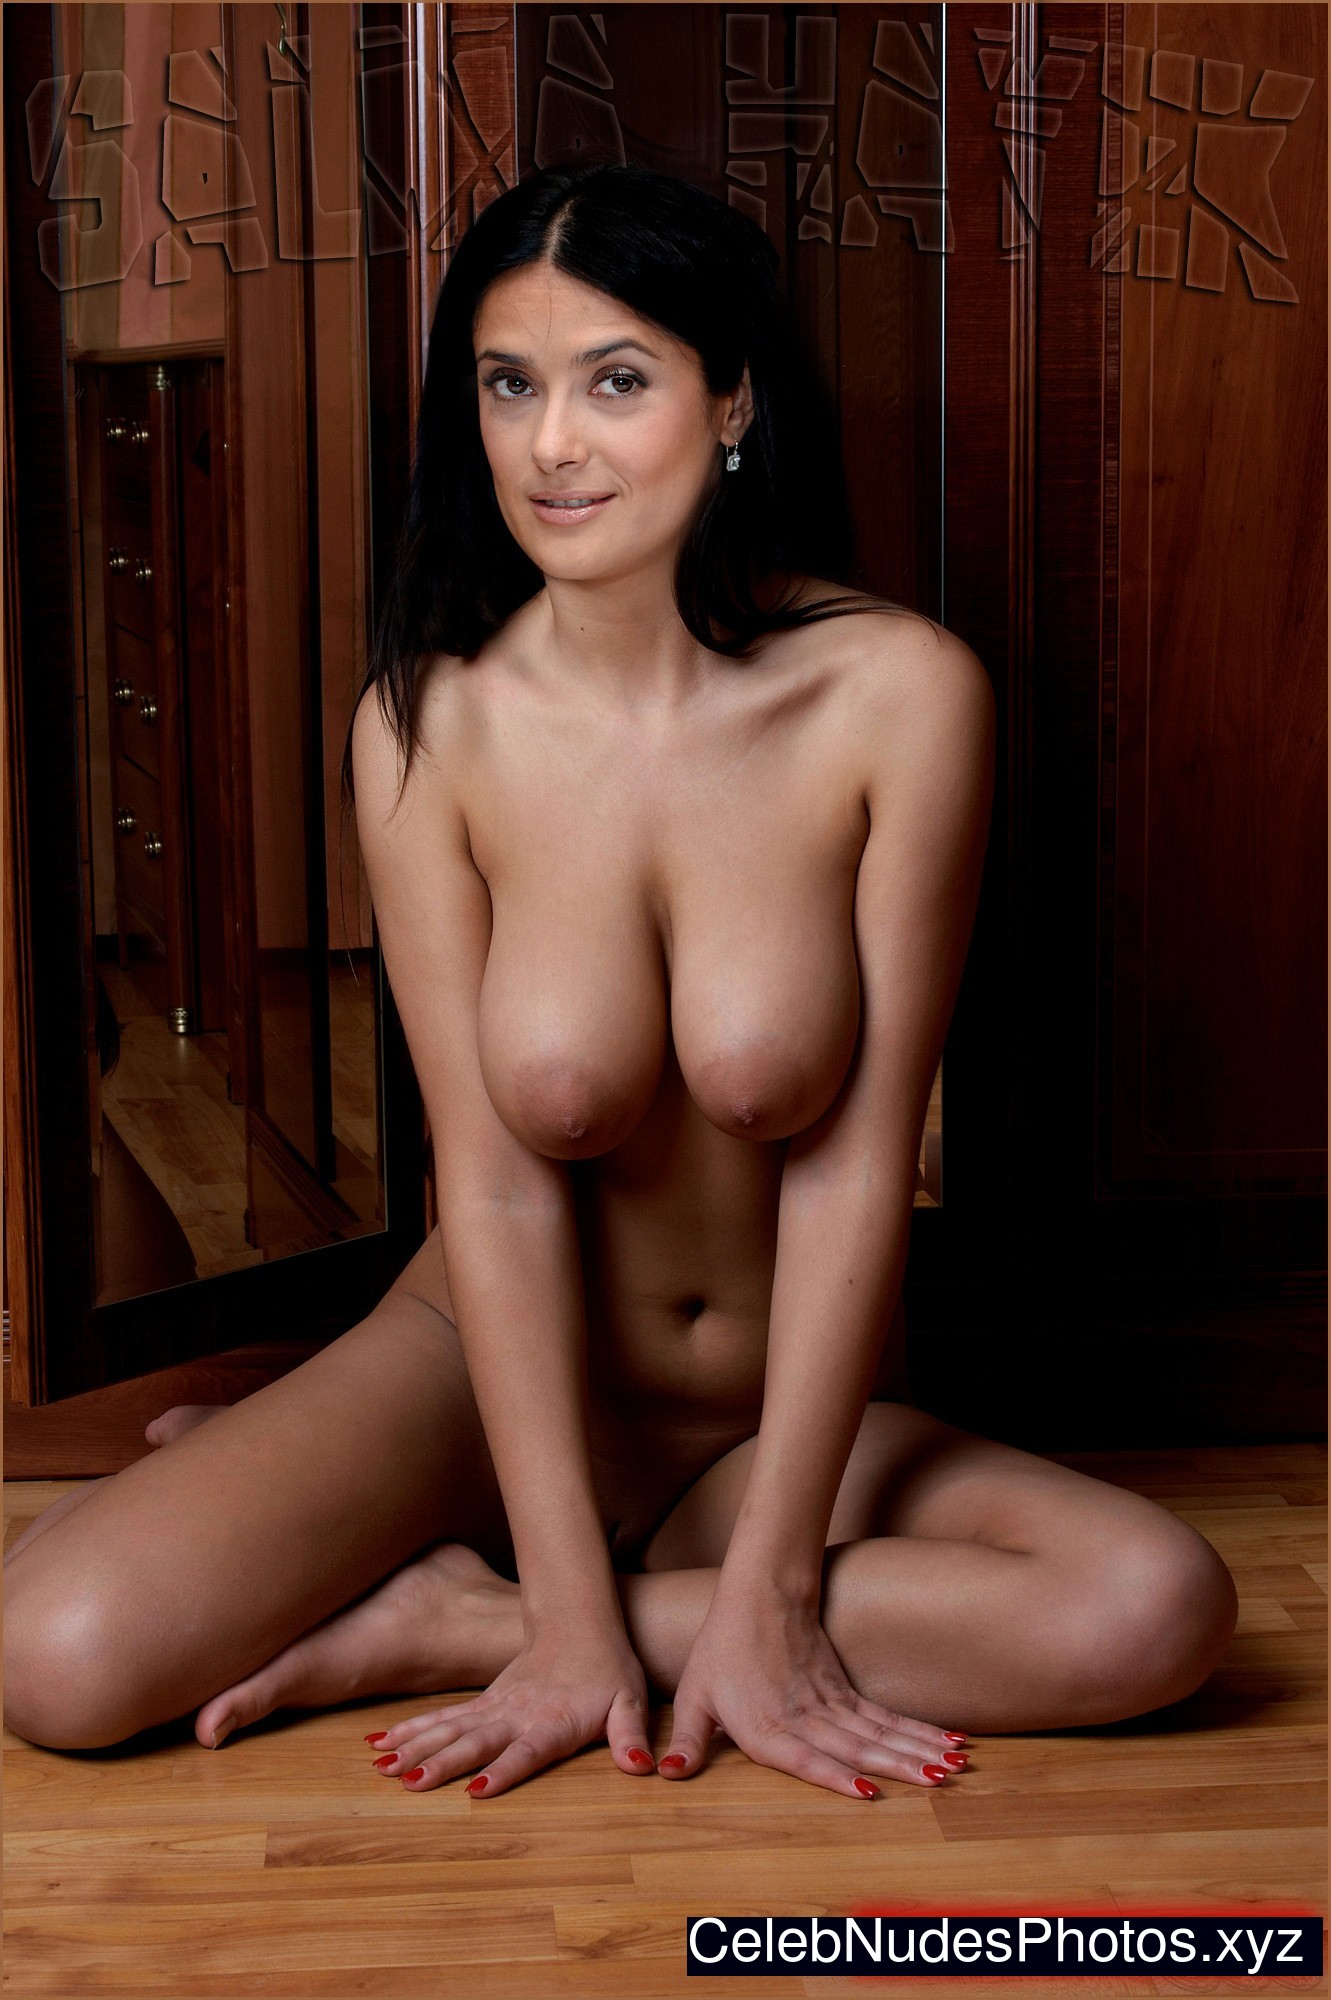 Salma Hayek nude celebrities